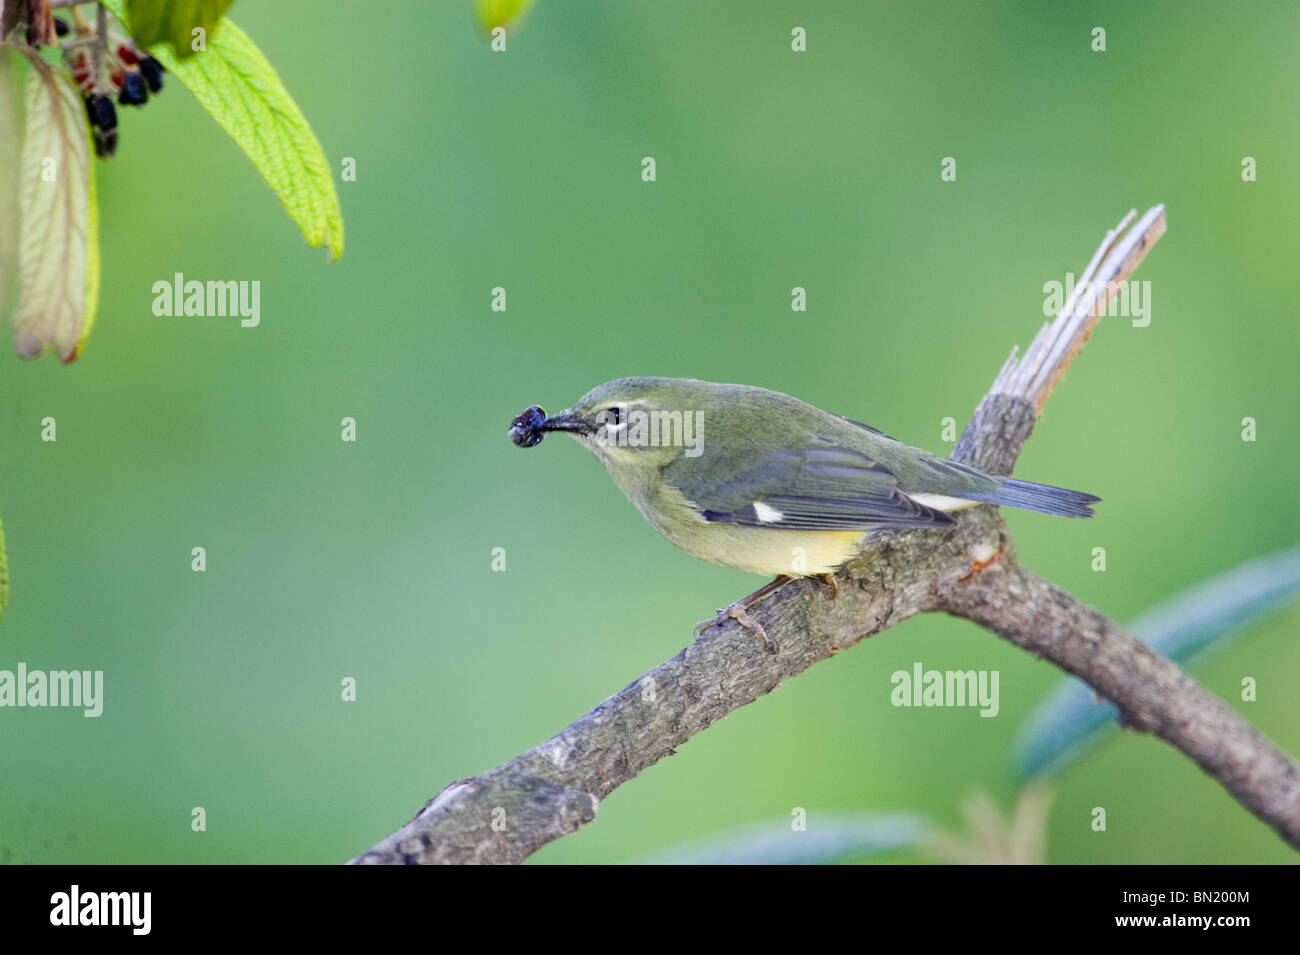 Female Black-throated Blue Warbler perched on a branch eating a Leatherleaf Virburnum berry - Stock Image